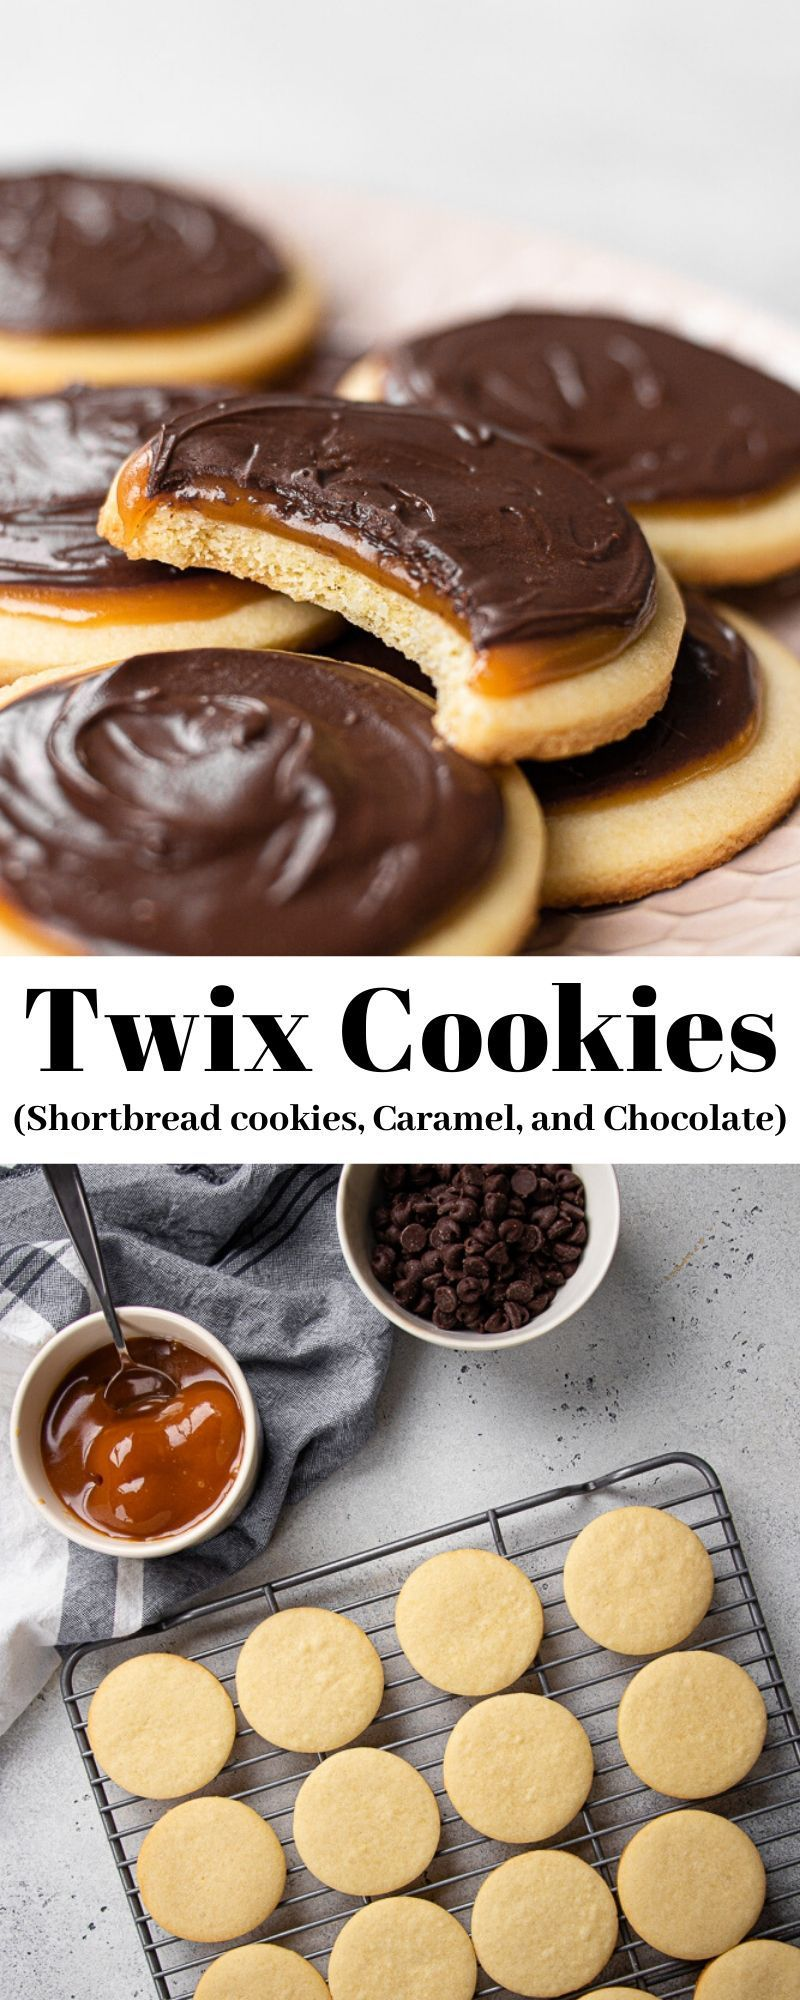 Twix Cookies | Veronika's Kitchen